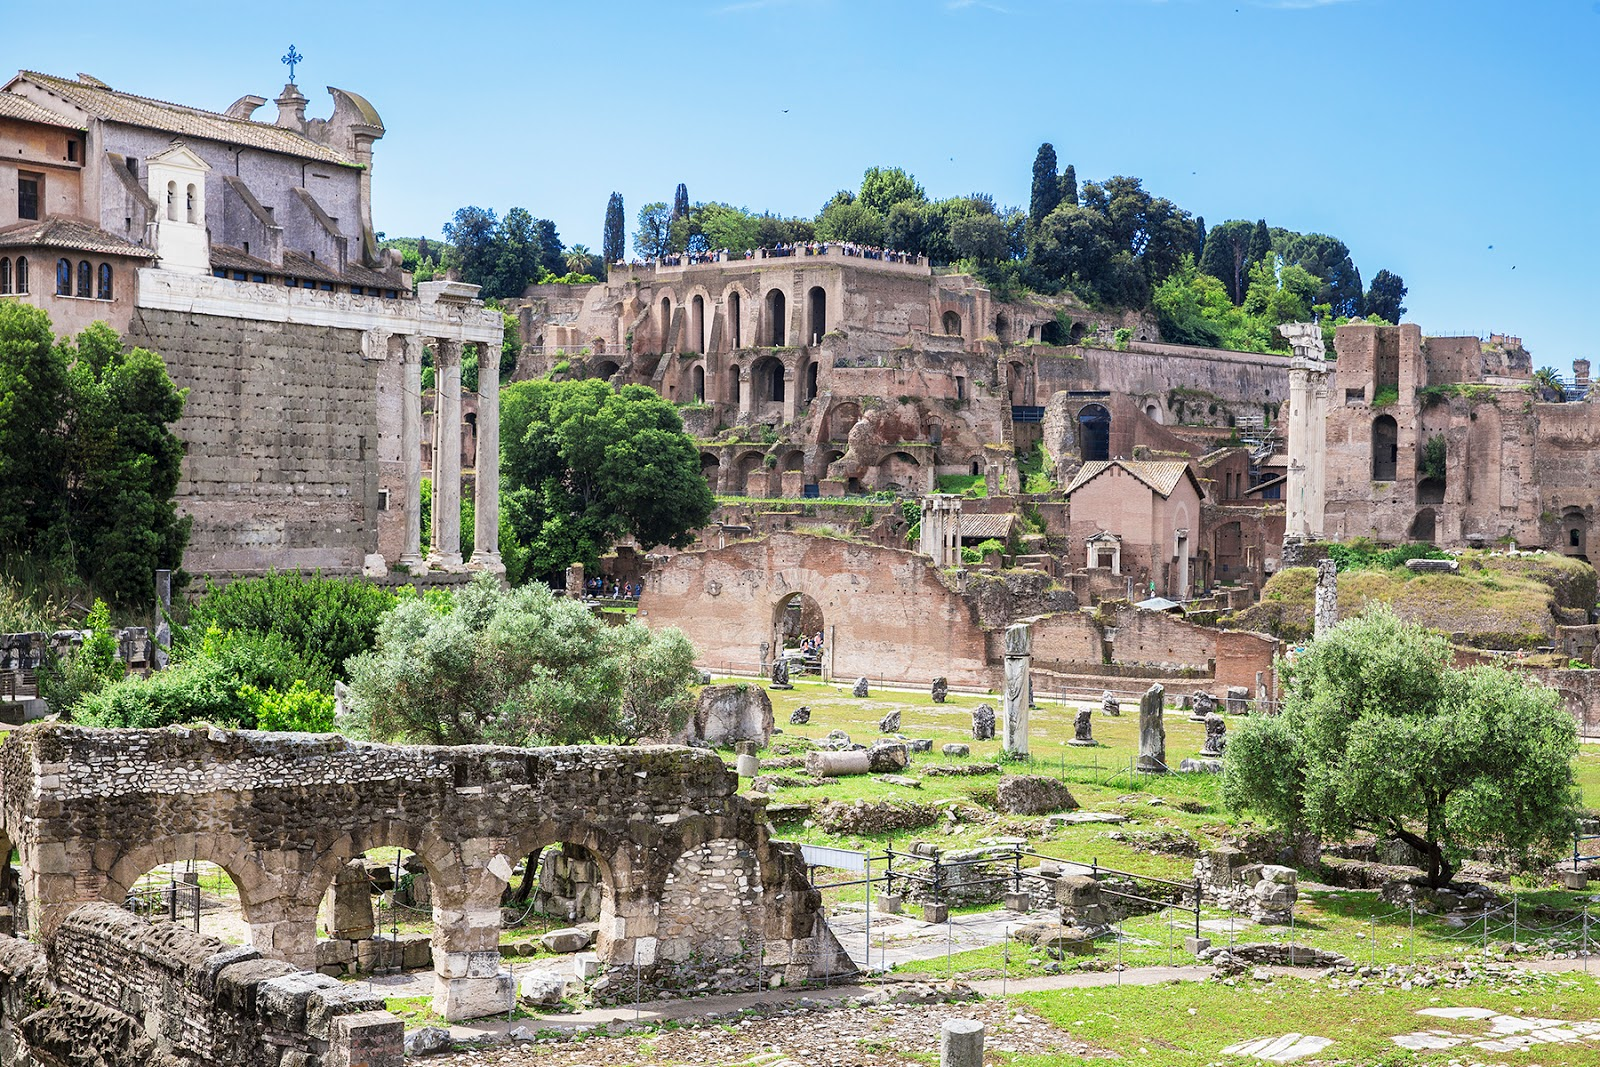 Rome, Italy by Posh, Broke, & Bored - Palatine Hill